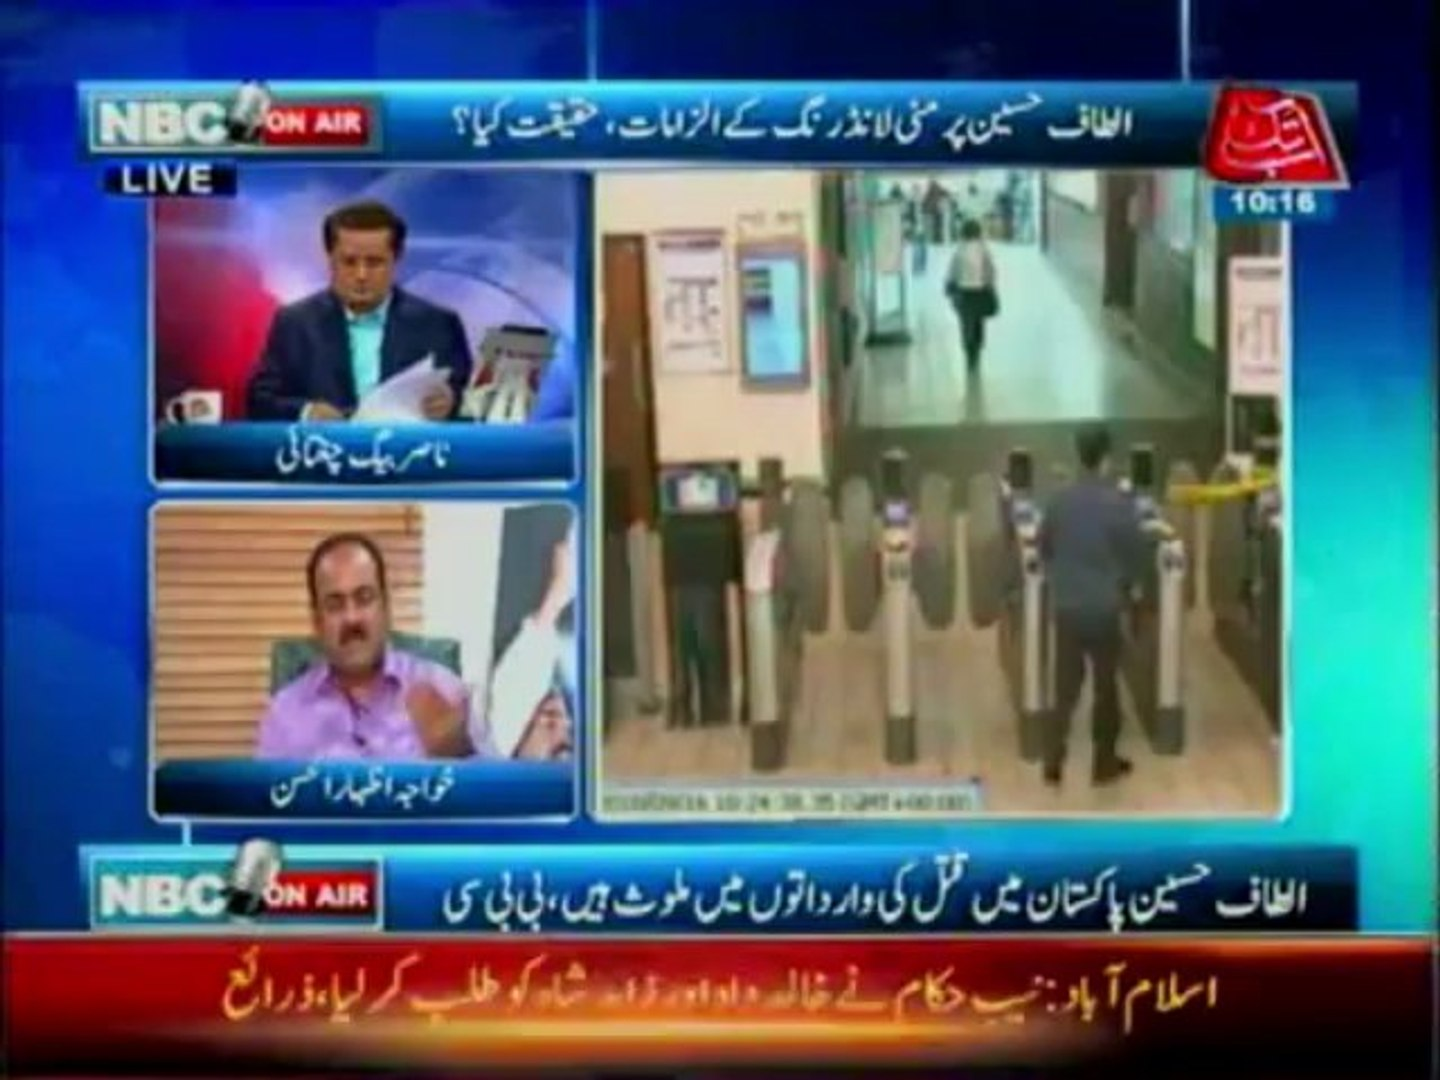 NBC OnAir EP 55 Part 1-11 July 2013-Topic-BBC Documentary on Altaf Hussain, MQM Version, PM Visit to